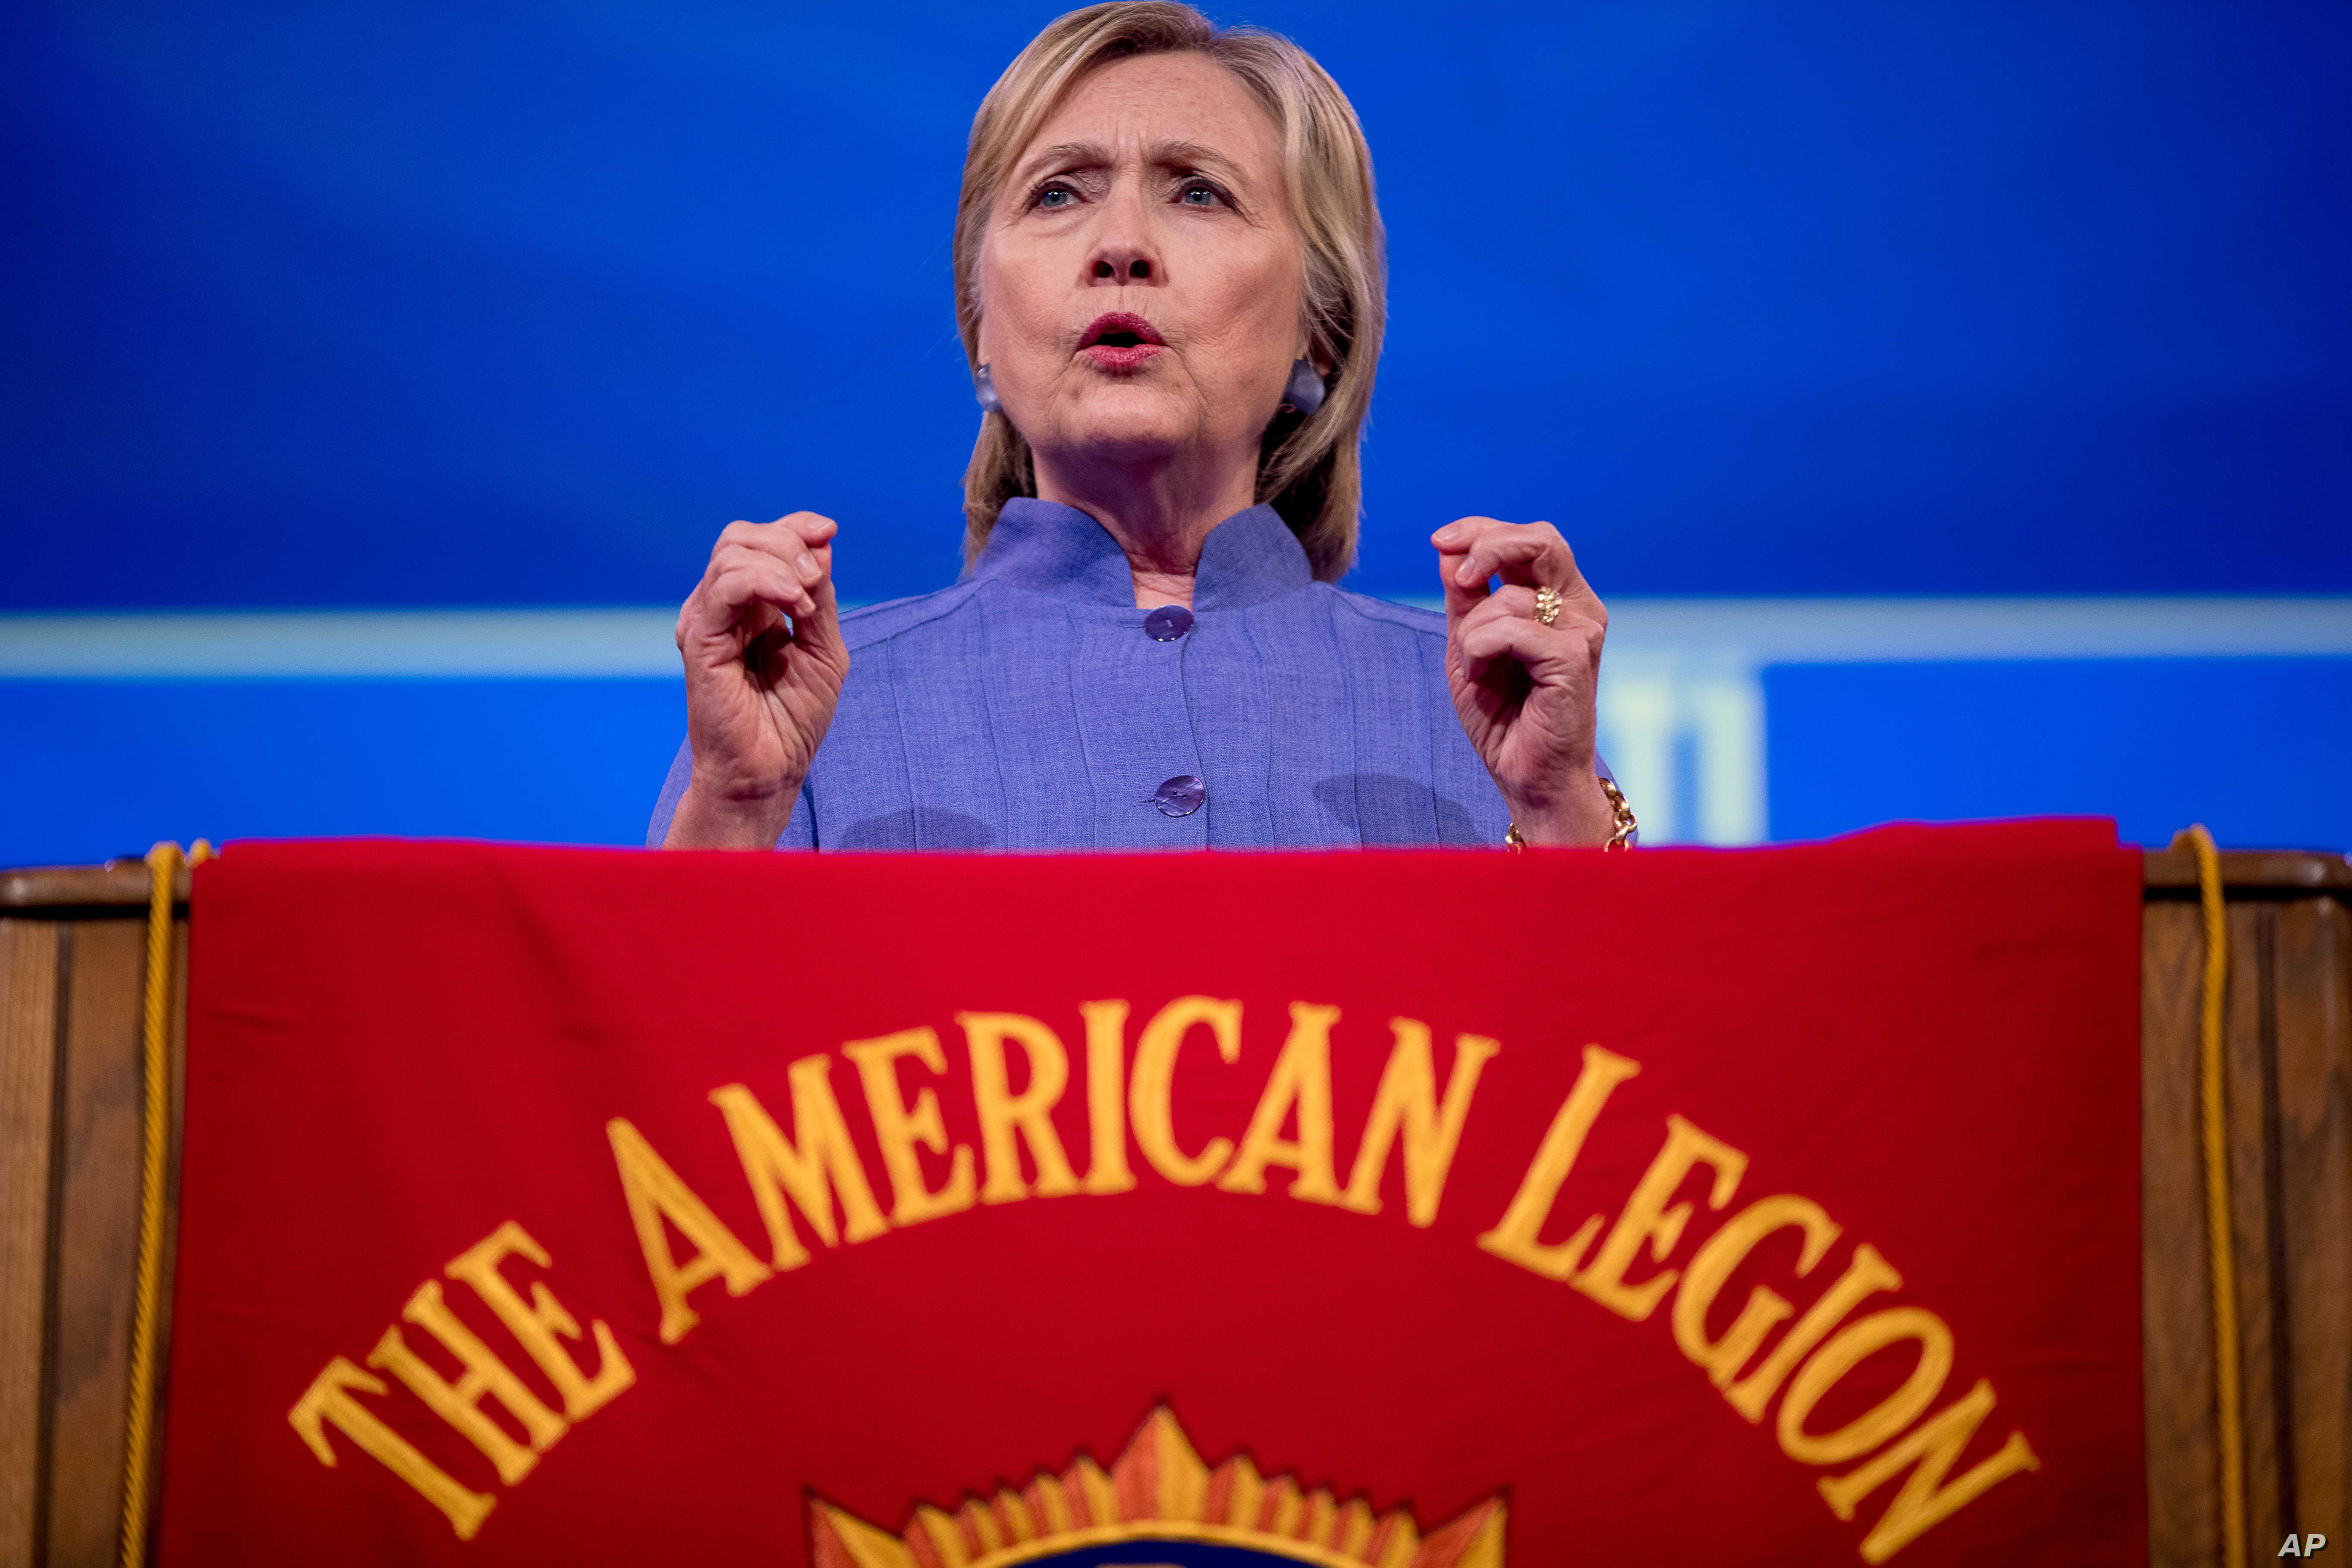 Democratic presidential candidate Hillary Clinton speaks at the American Legion's 98th Annual Convention at the Duke Energy Convention Center in Cincinnati, Ohio, Aug. 31, 2016.